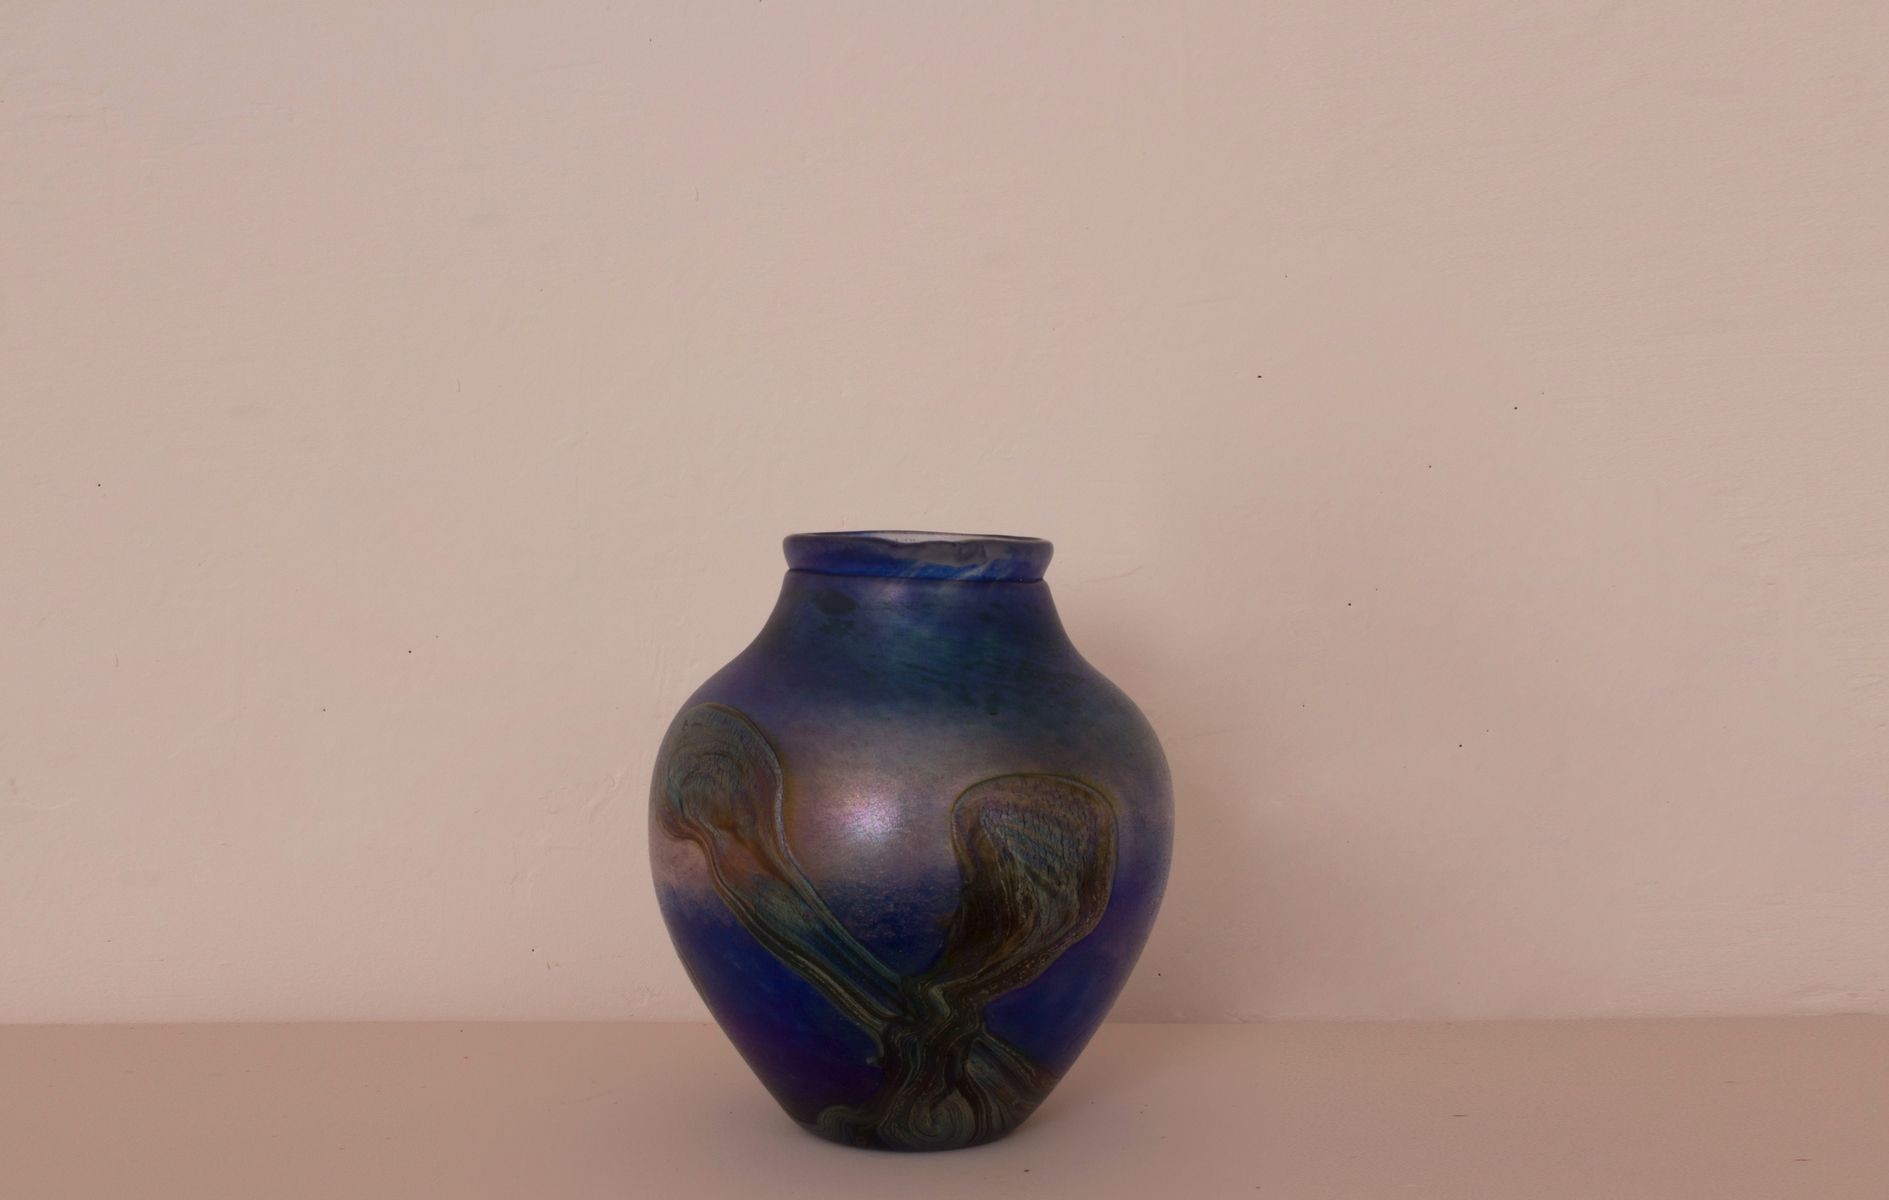 Vintage blue iridescent blown glass vase from jean claude novaro vintage blue iridescent blown glass vase from jean claude novaro 1984 for sale at pamono reviewsmspy